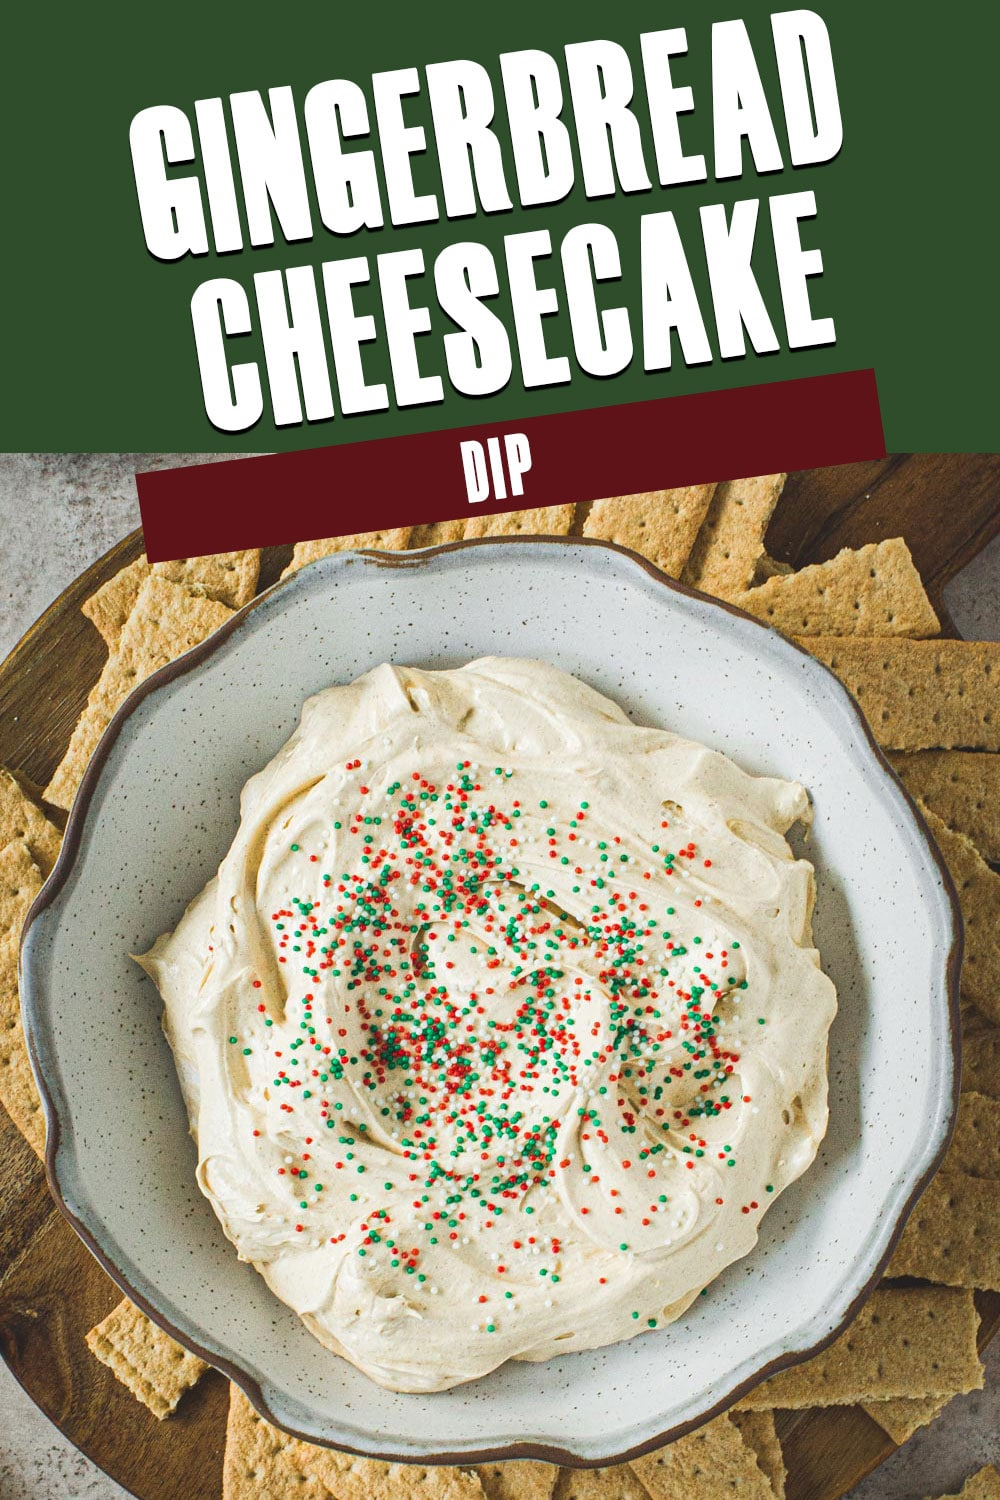 Gingerbread cheesecake dip with white title for Pinterest.